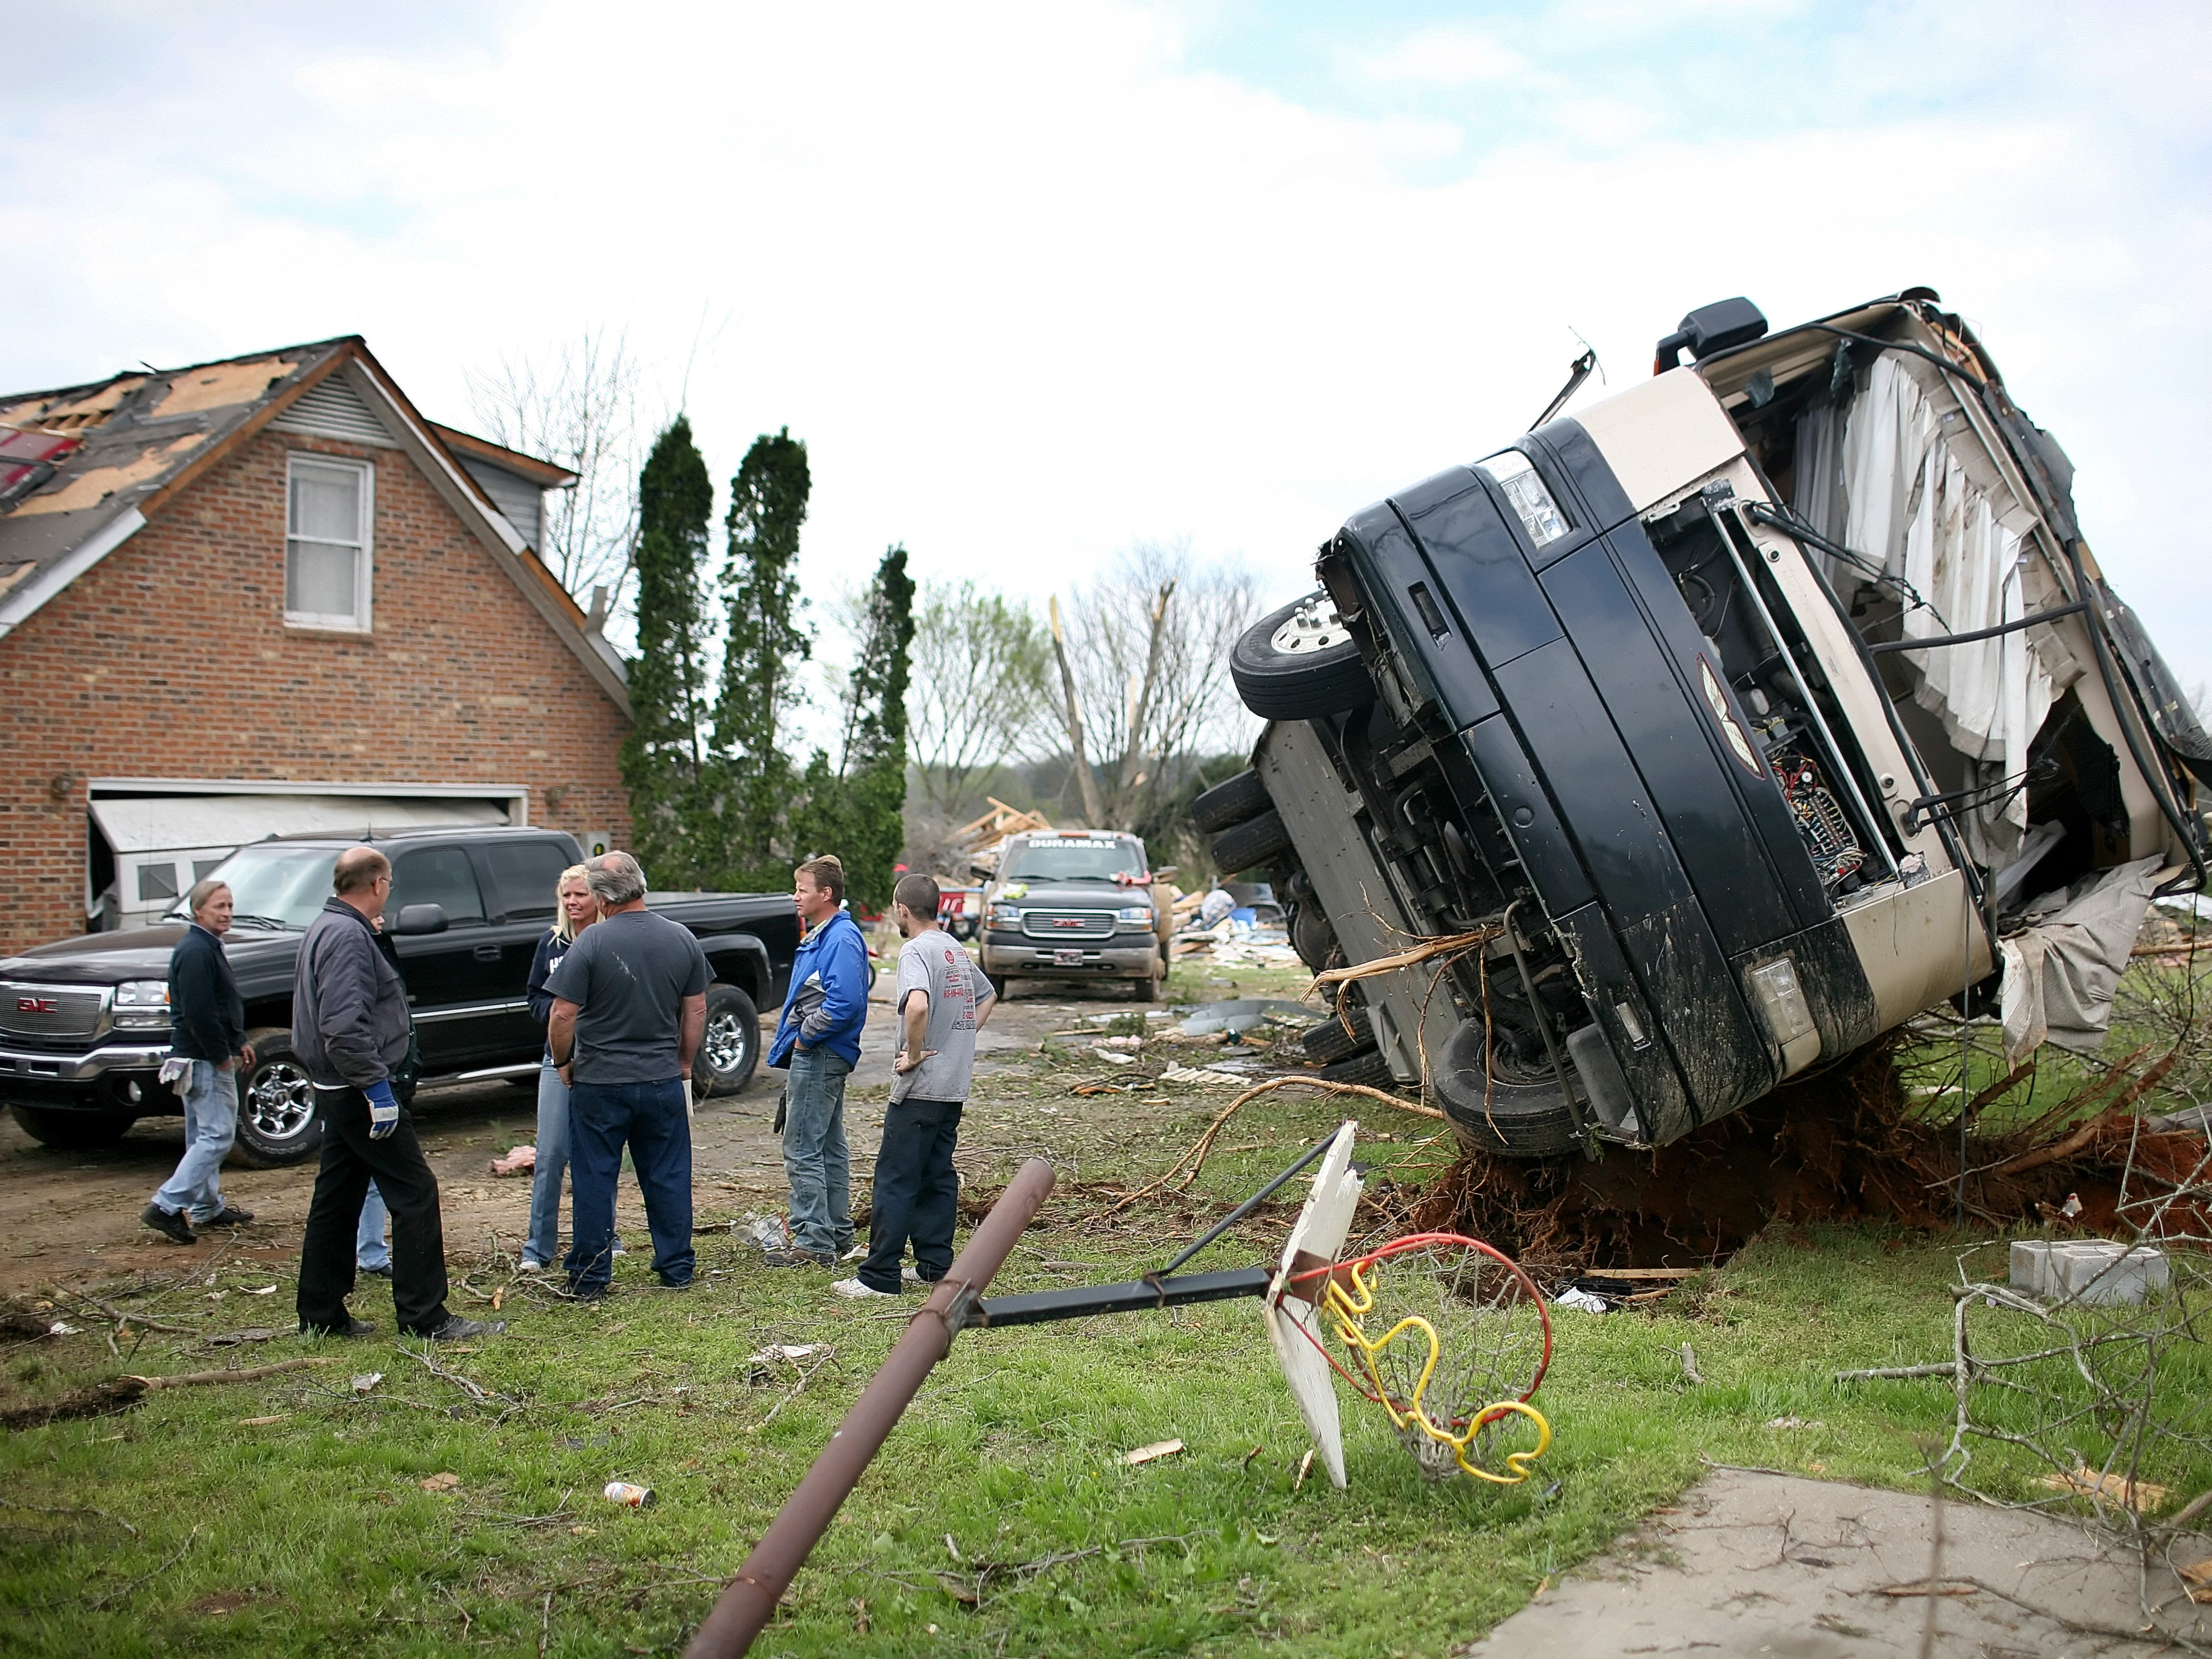 A coach bus sits flipped over at the home of Lorie and Lonnie Cox in the Blackman Community after a tornado in Murfreesboro, Tennessee on Saturday April 11, 2009. (Josh Anderson for The Tennessean)